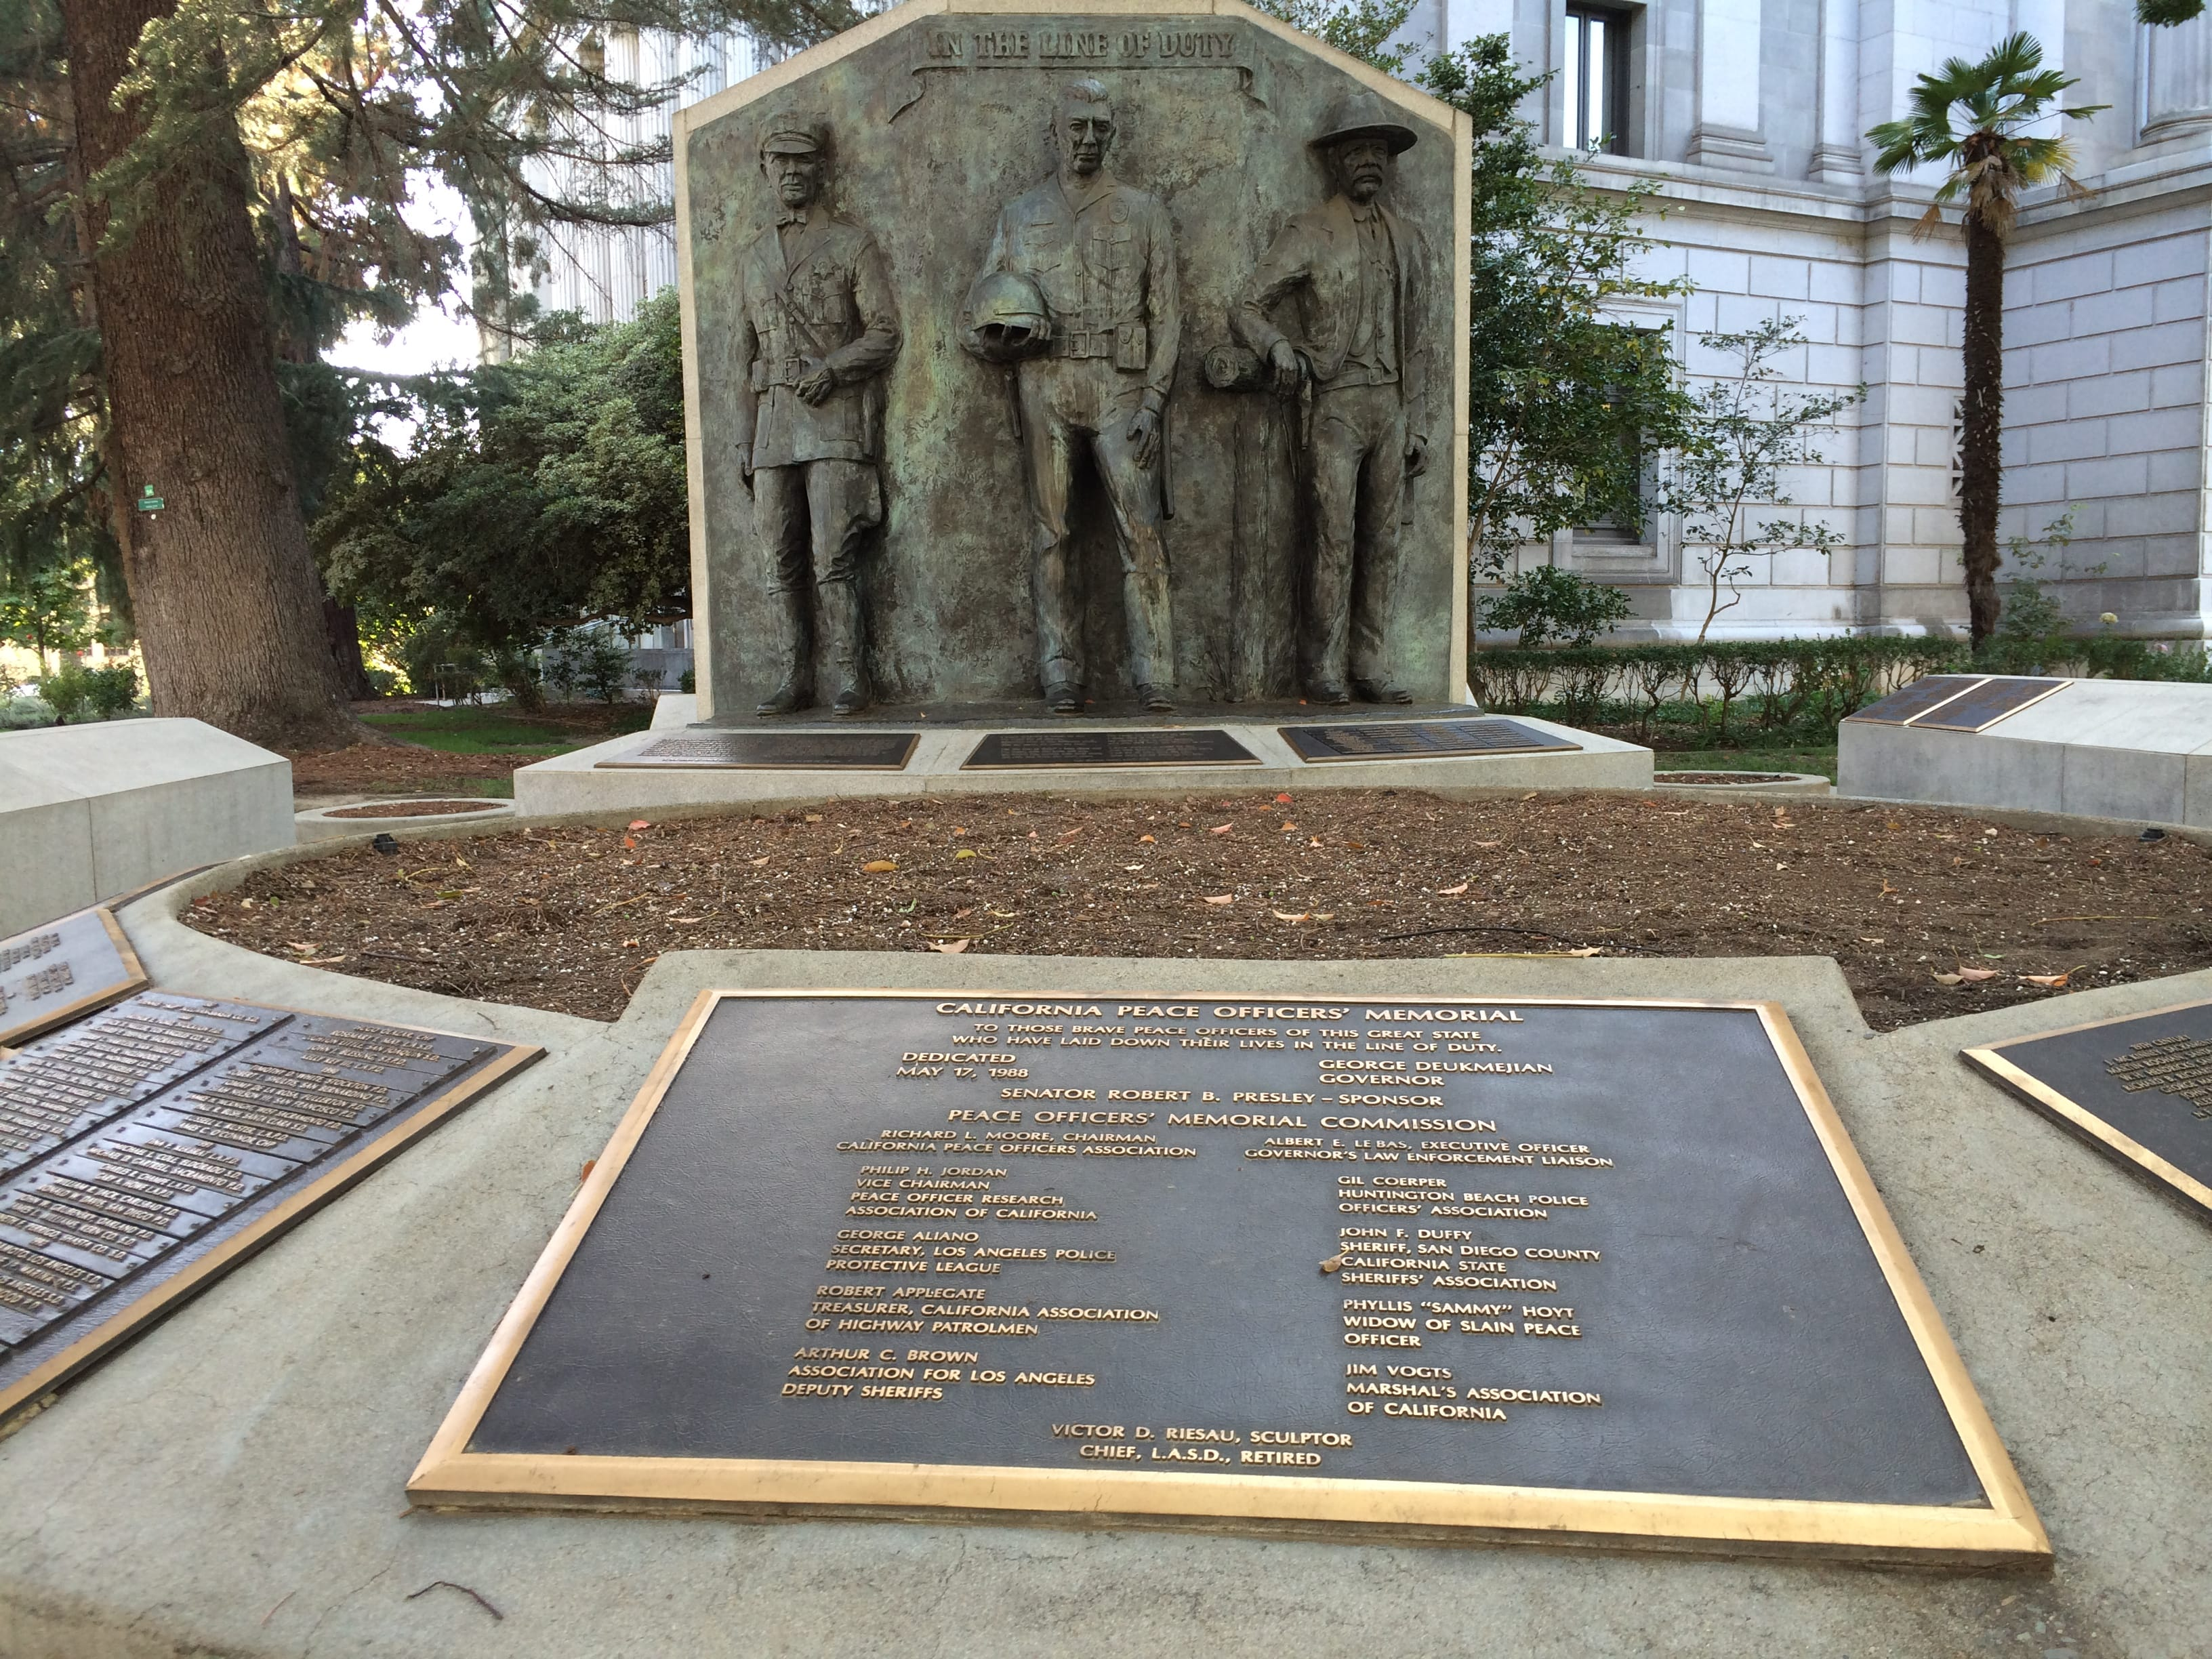 A closer view of one of the memorial plaques with the three 9-foot statues in background.